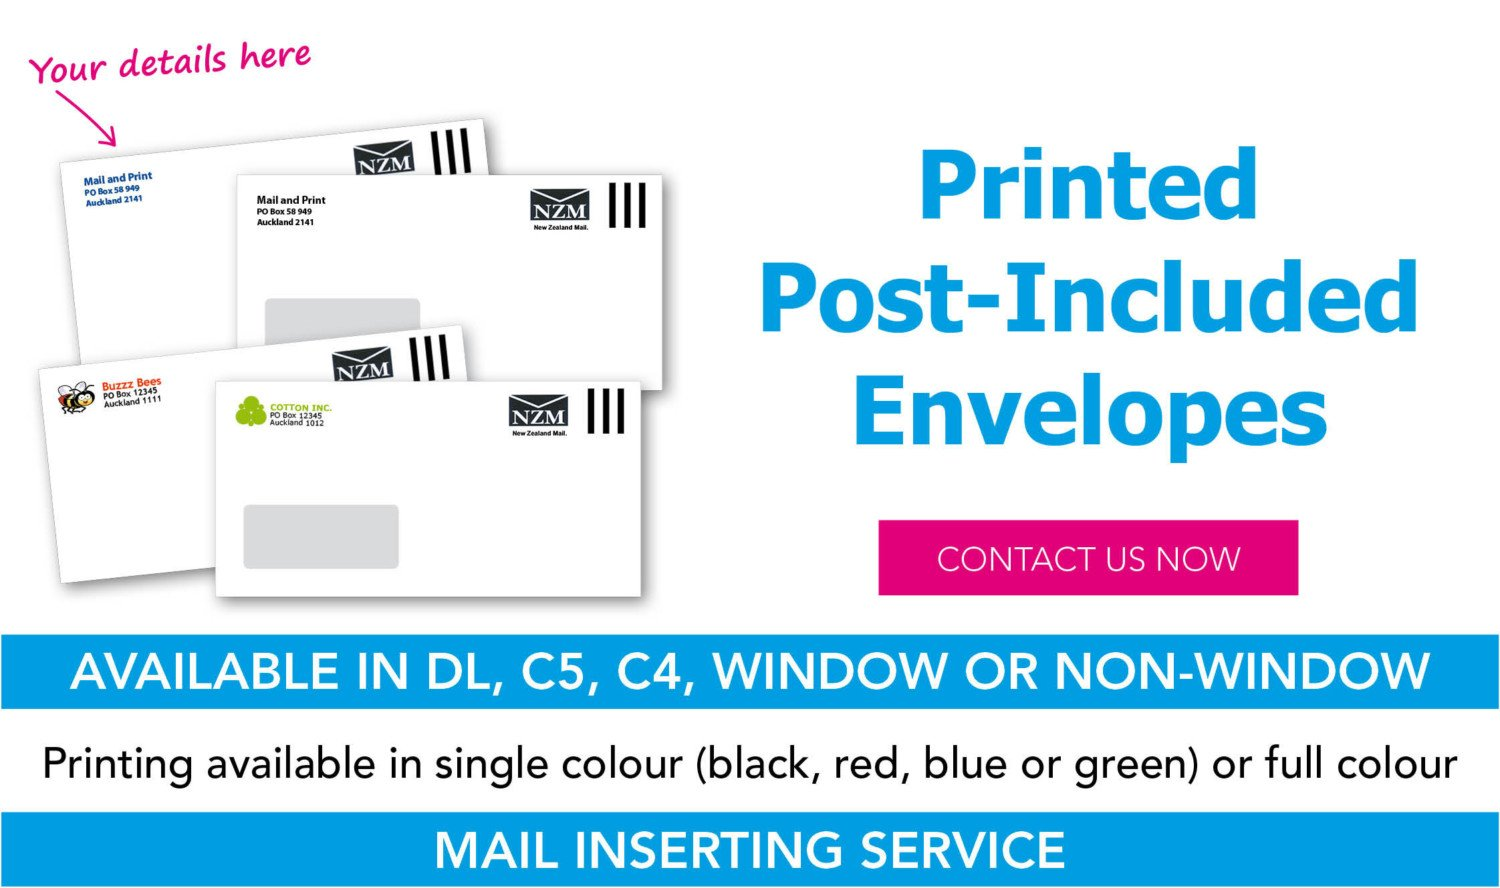 Mail&Print (Mail inserting page) top